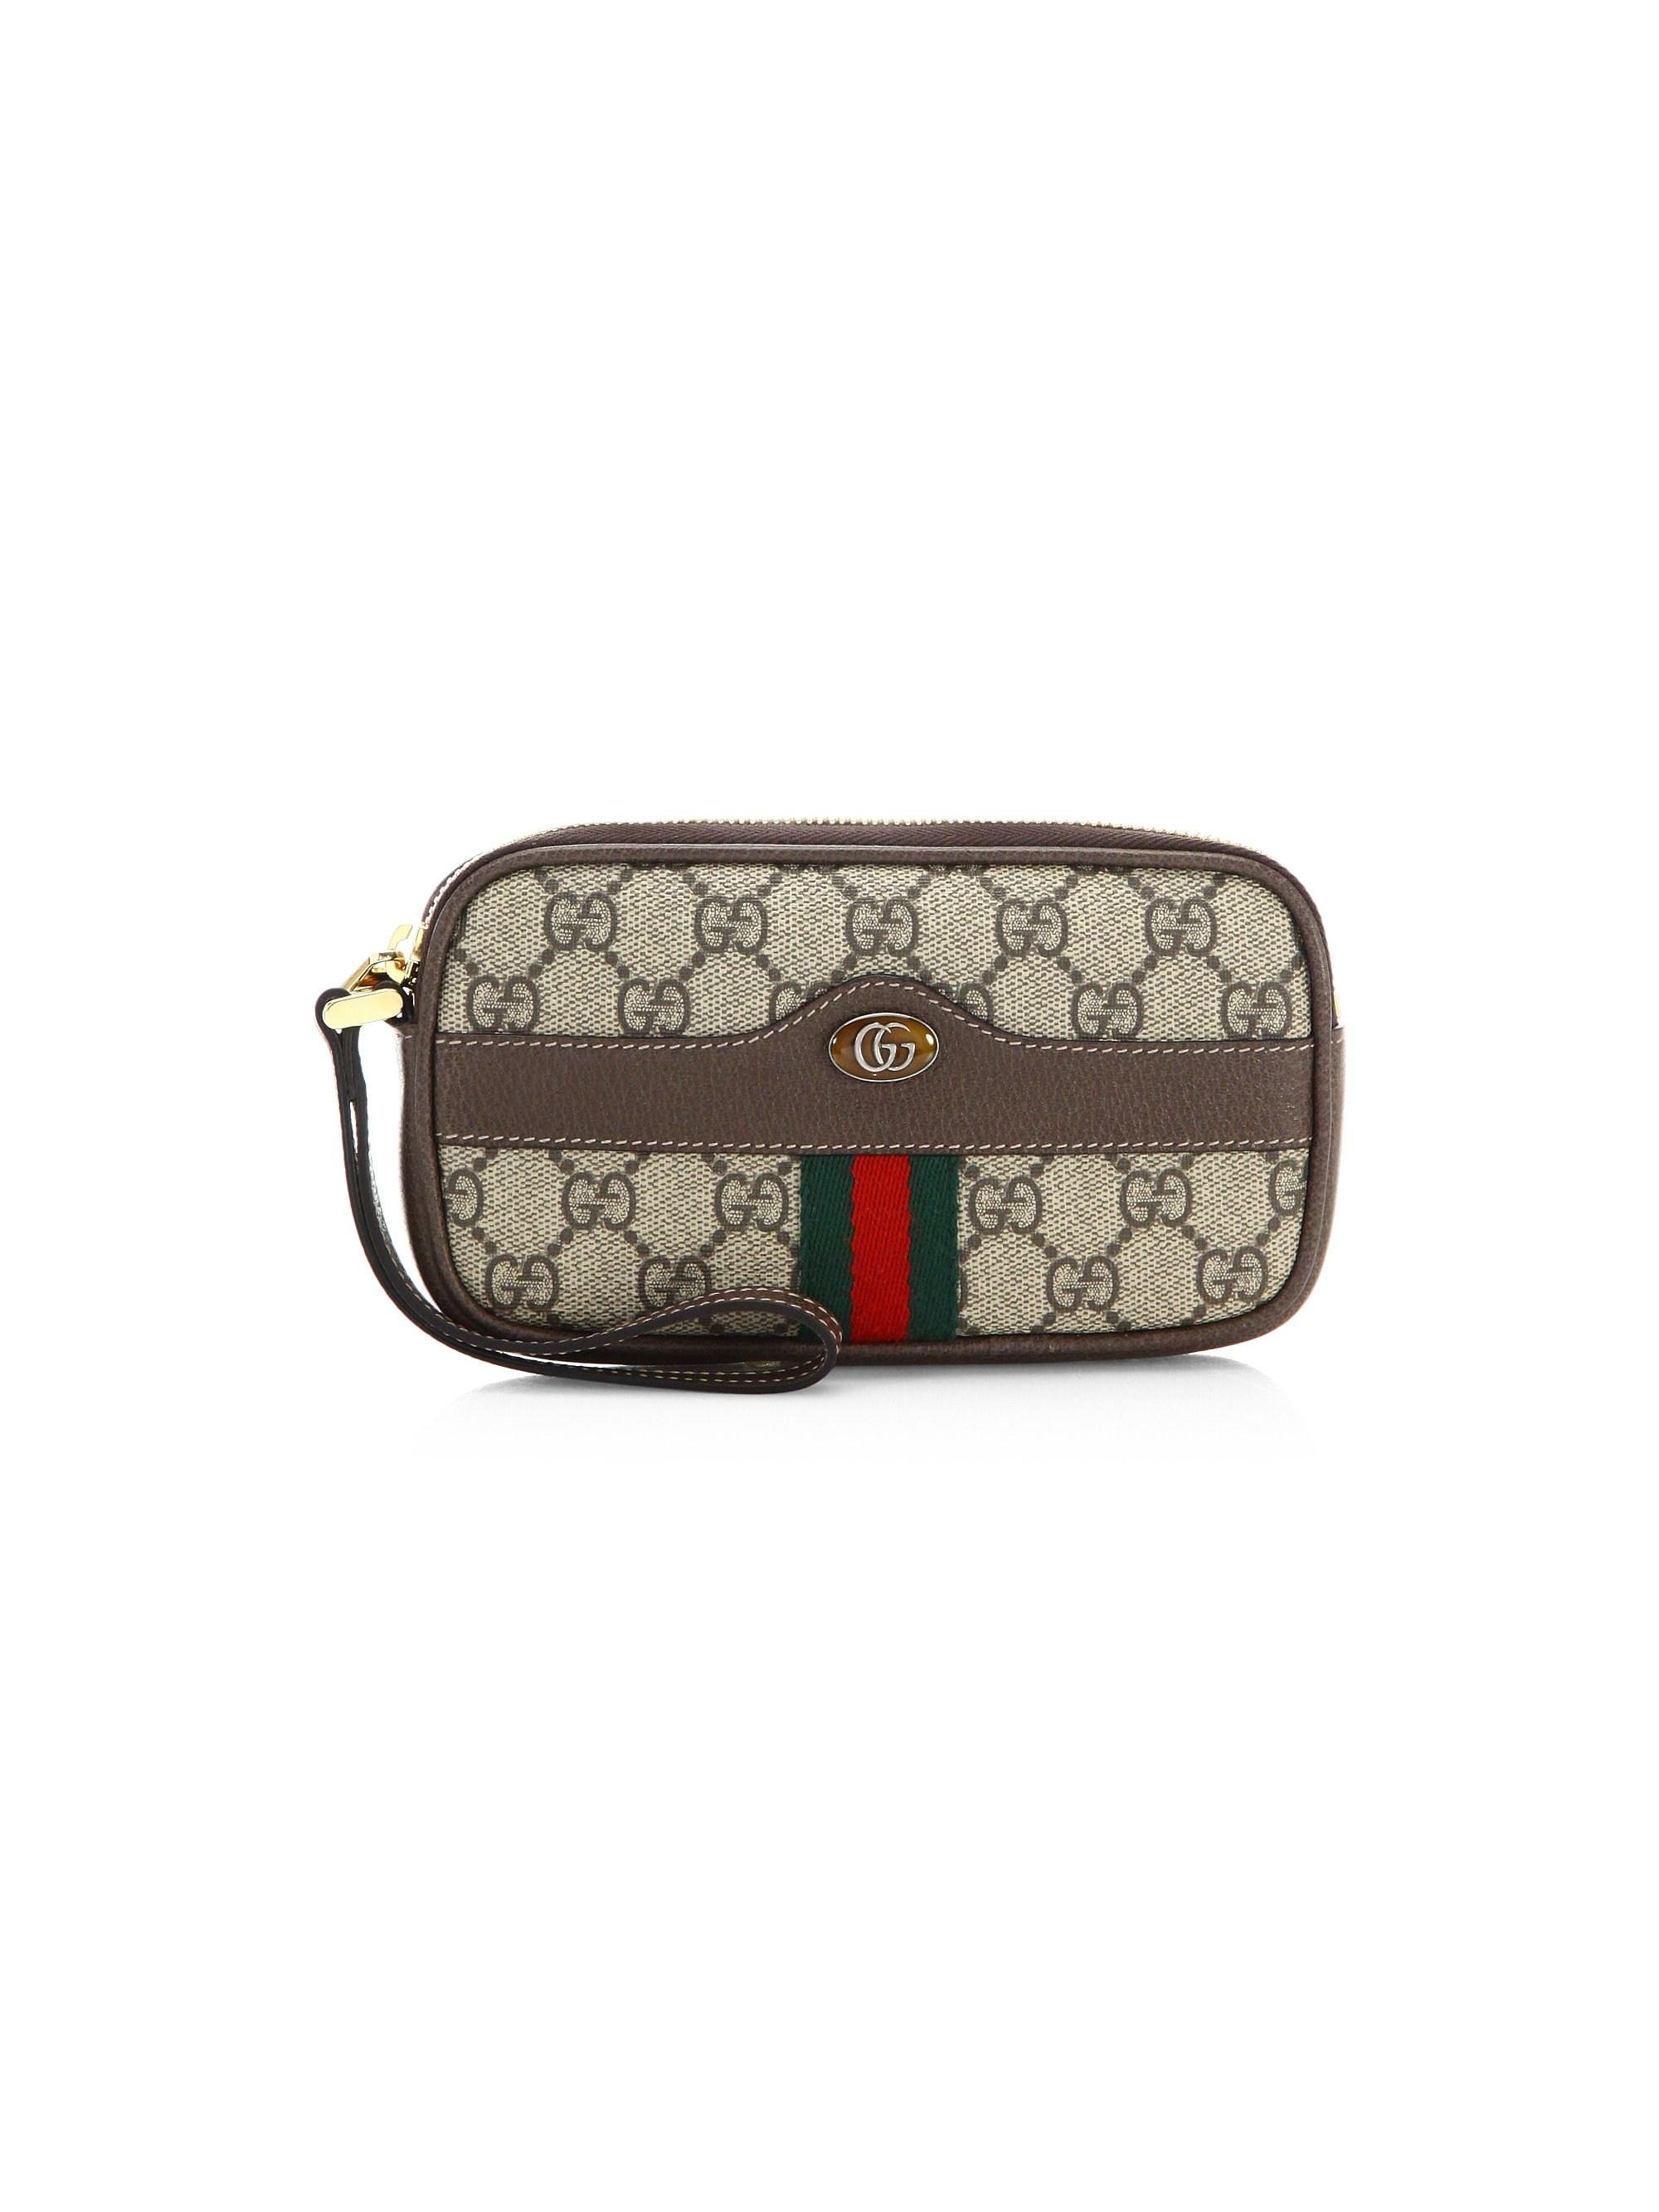 97846d1a70eac4 Gucci Women's Ophidia GG Supreme Cellphone Case - Brown in Brown - Lyst